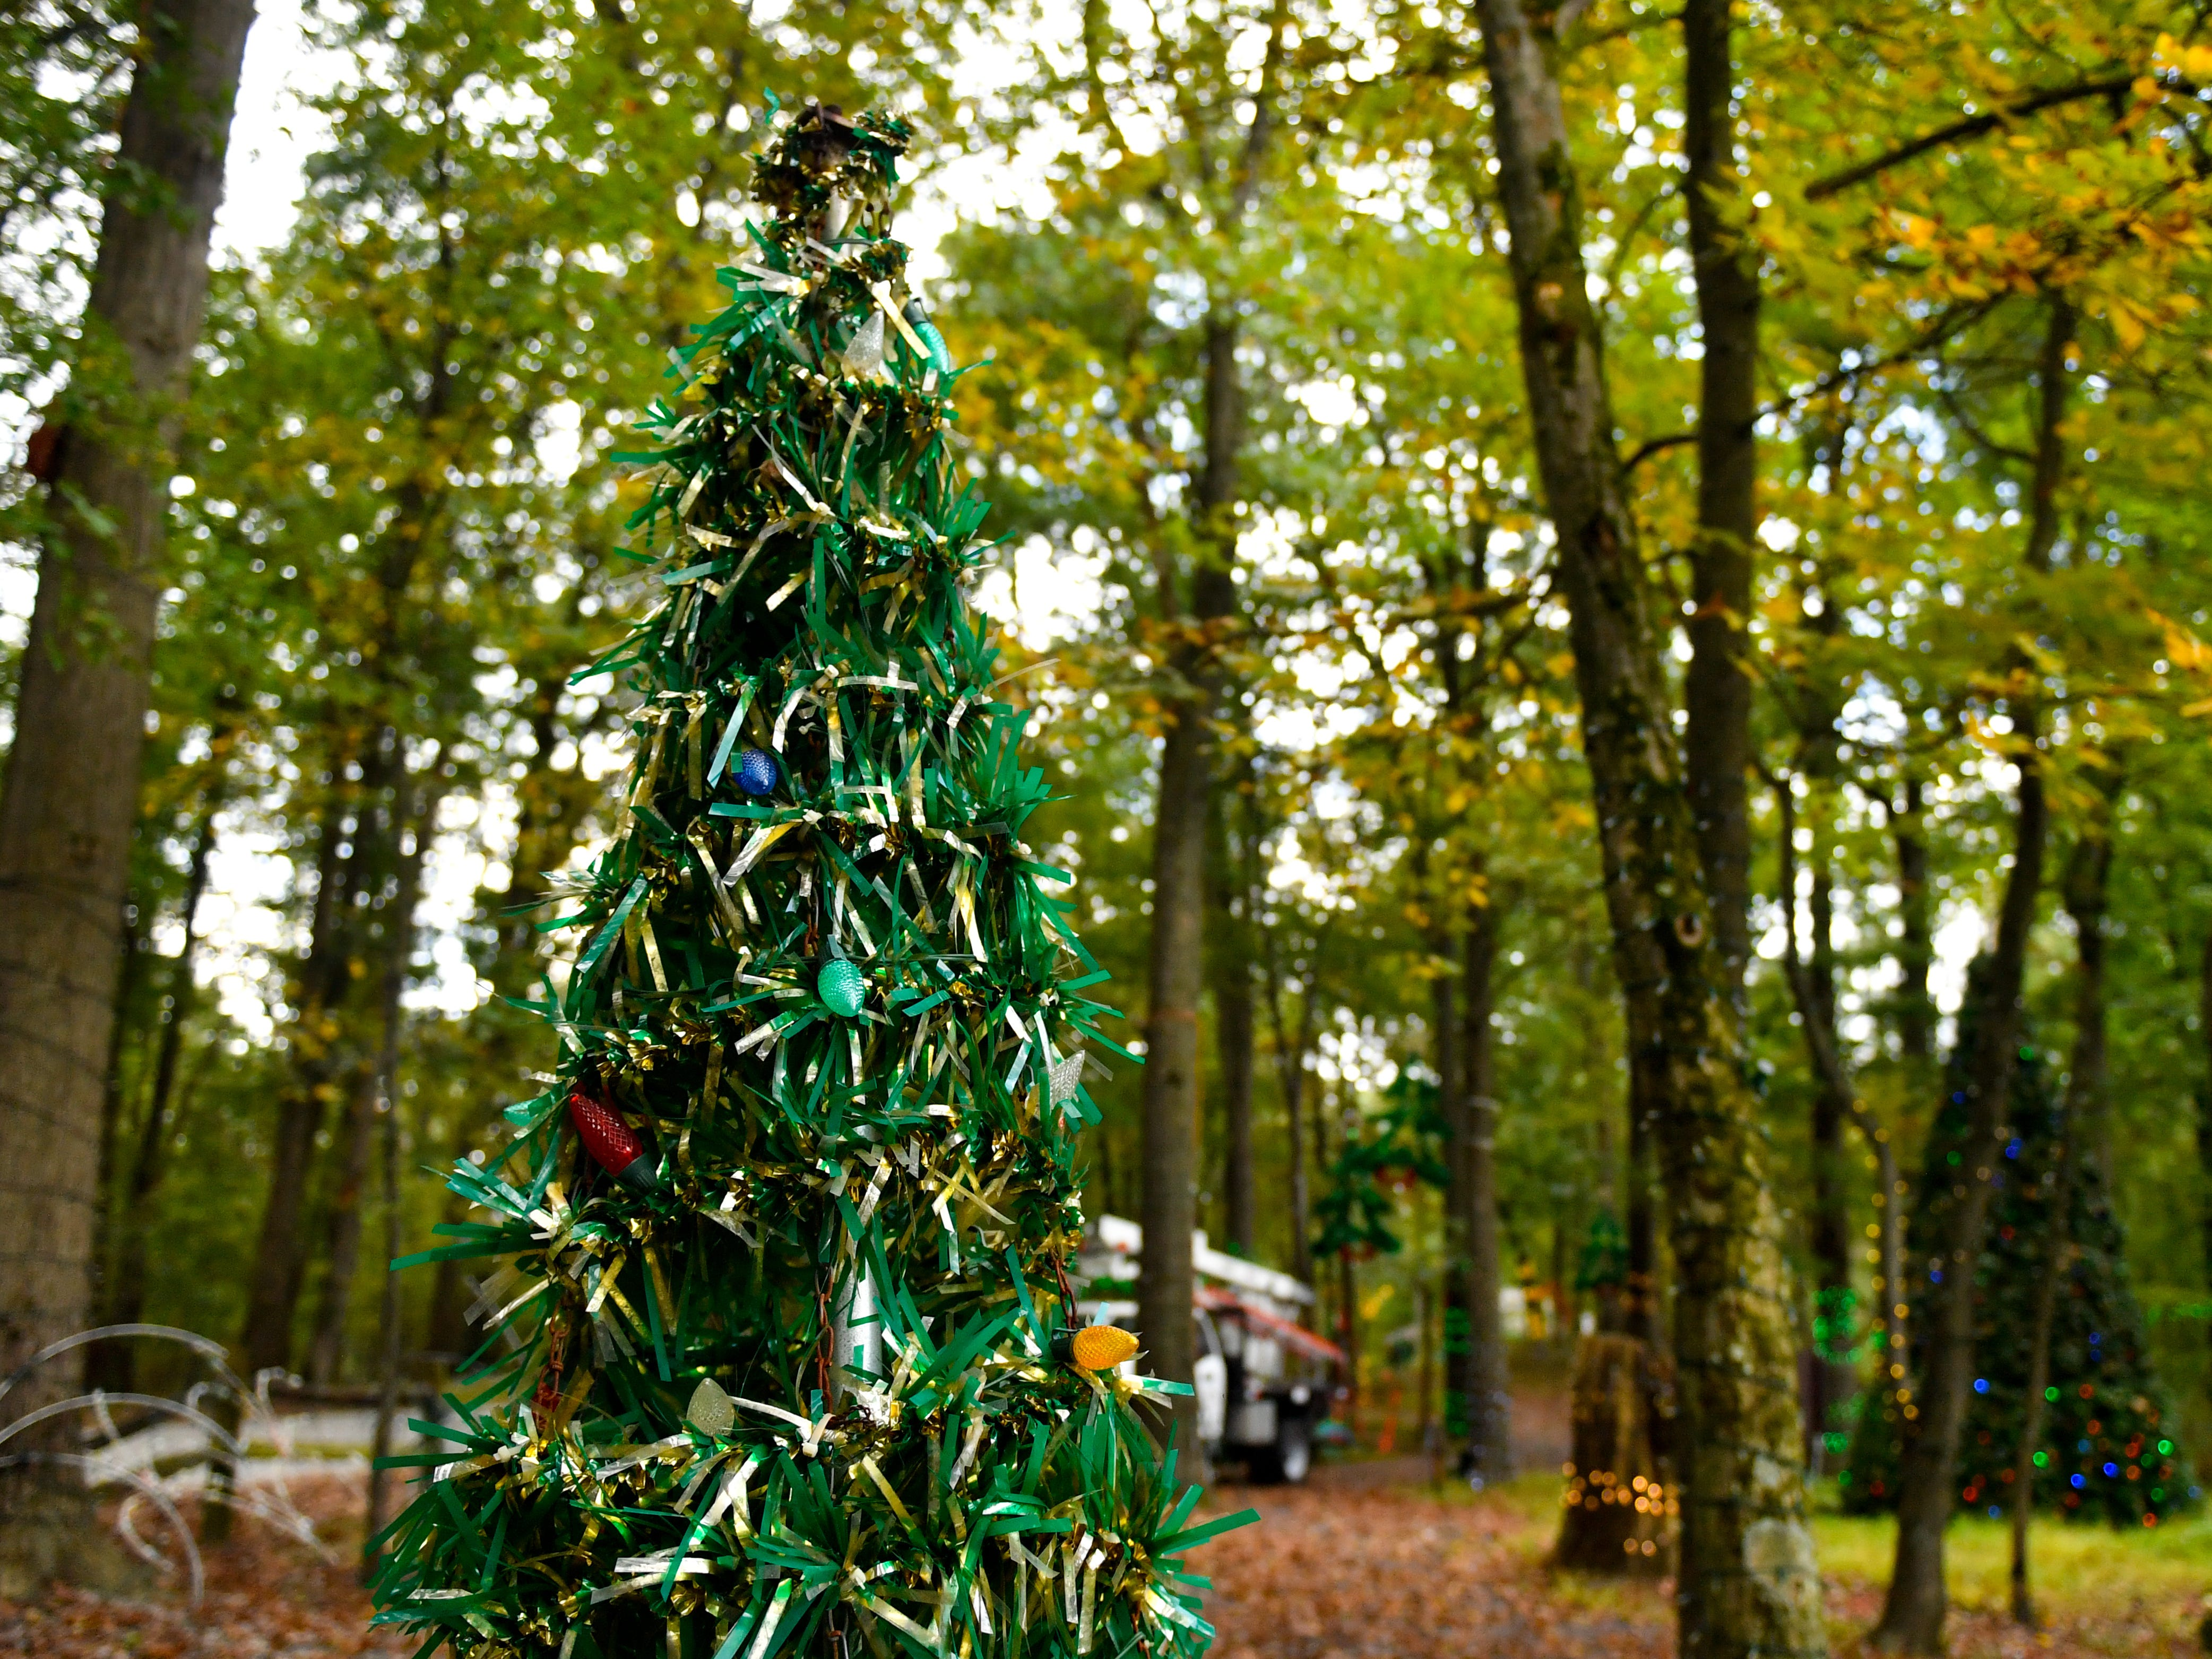 Smaller Christmas trees are spread throughout Christmas Magic in Rocky Ridge County Park, October 10, 2018.